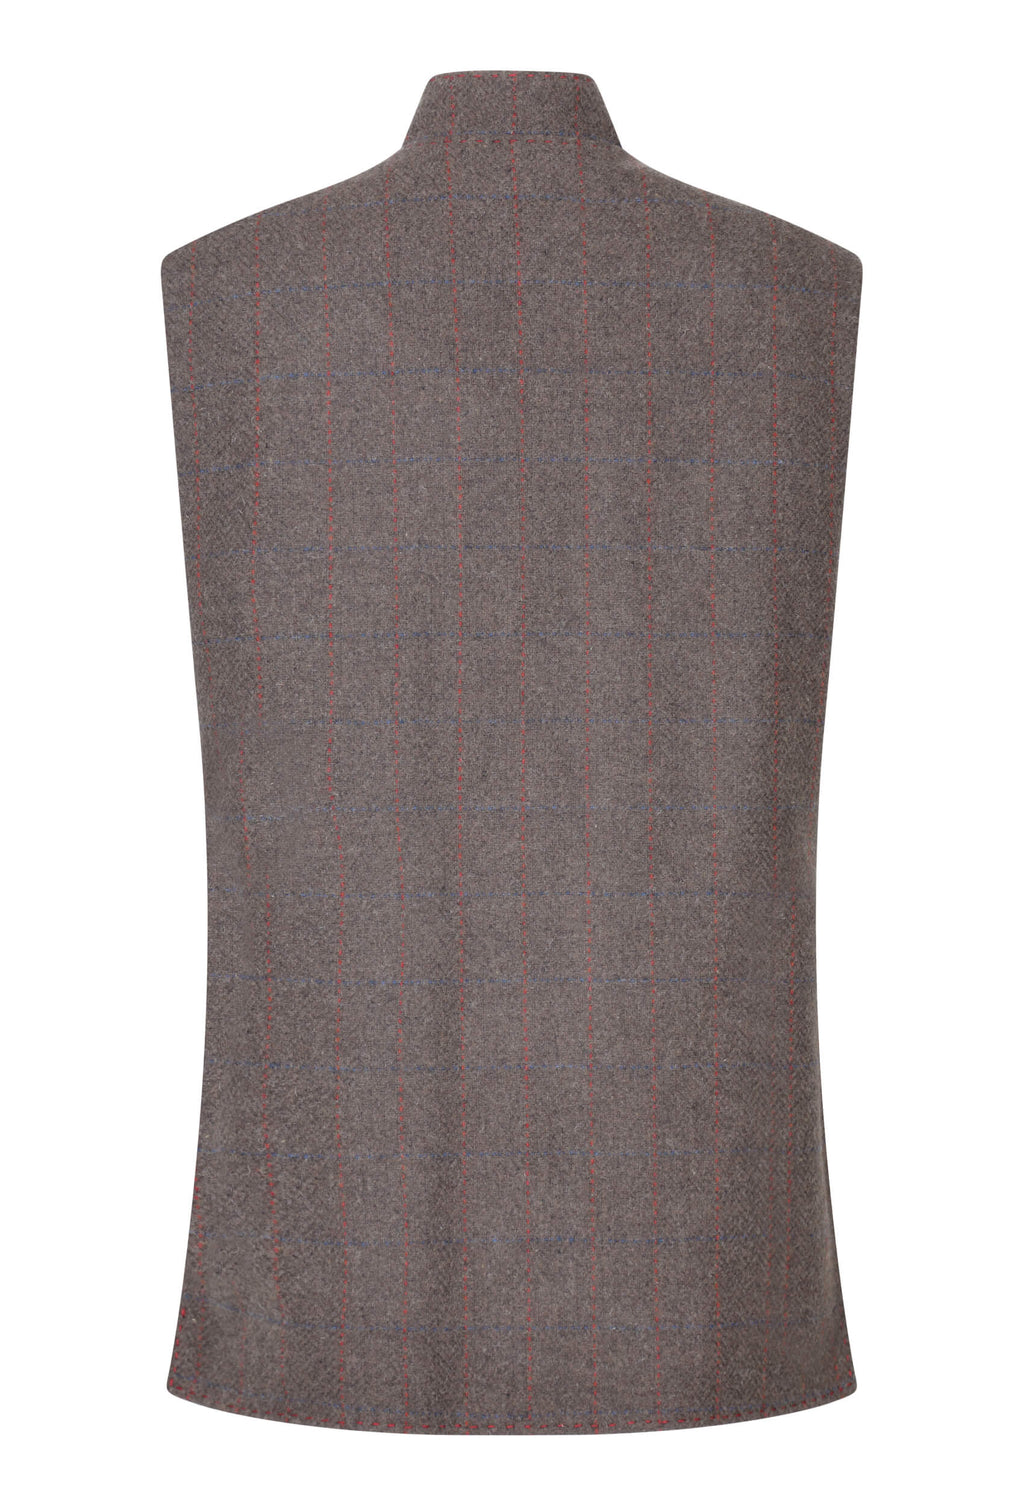 Brown-check-tweed-gilet